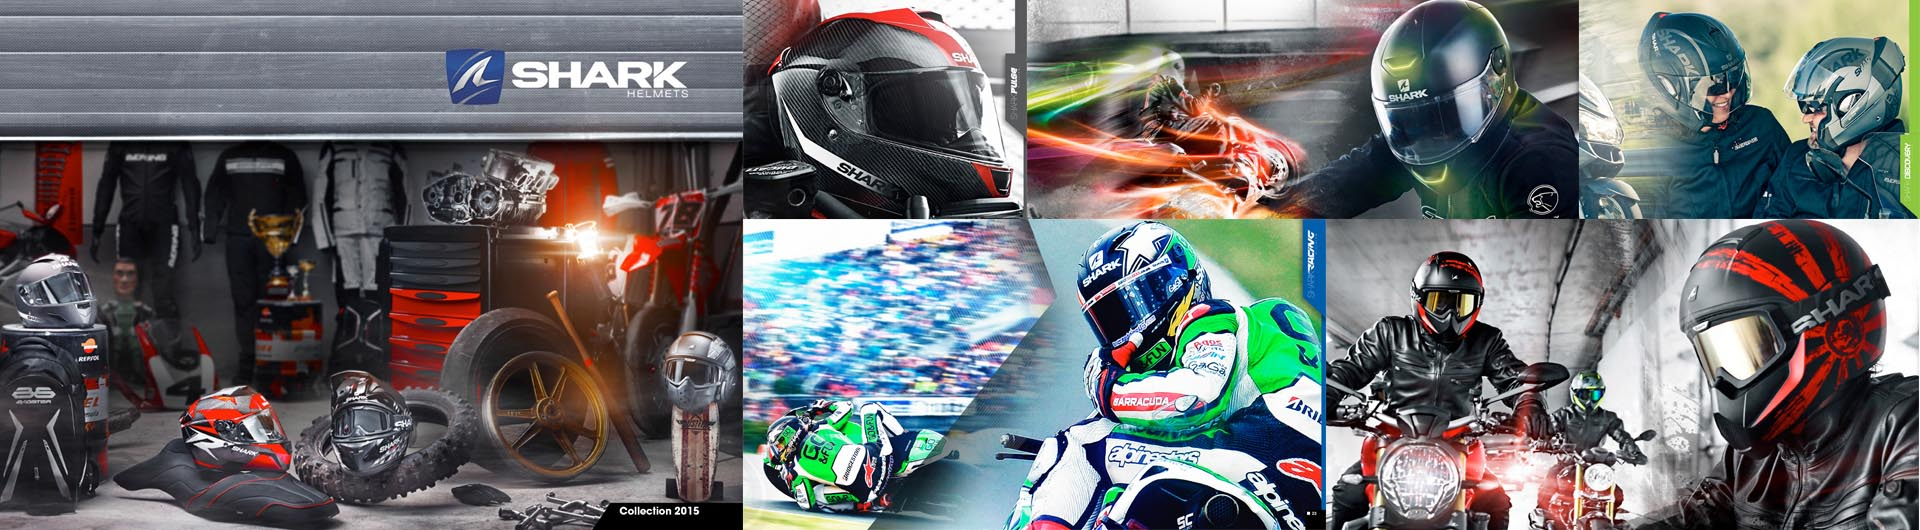 Shark 2015 Motorcycle Helmet Range